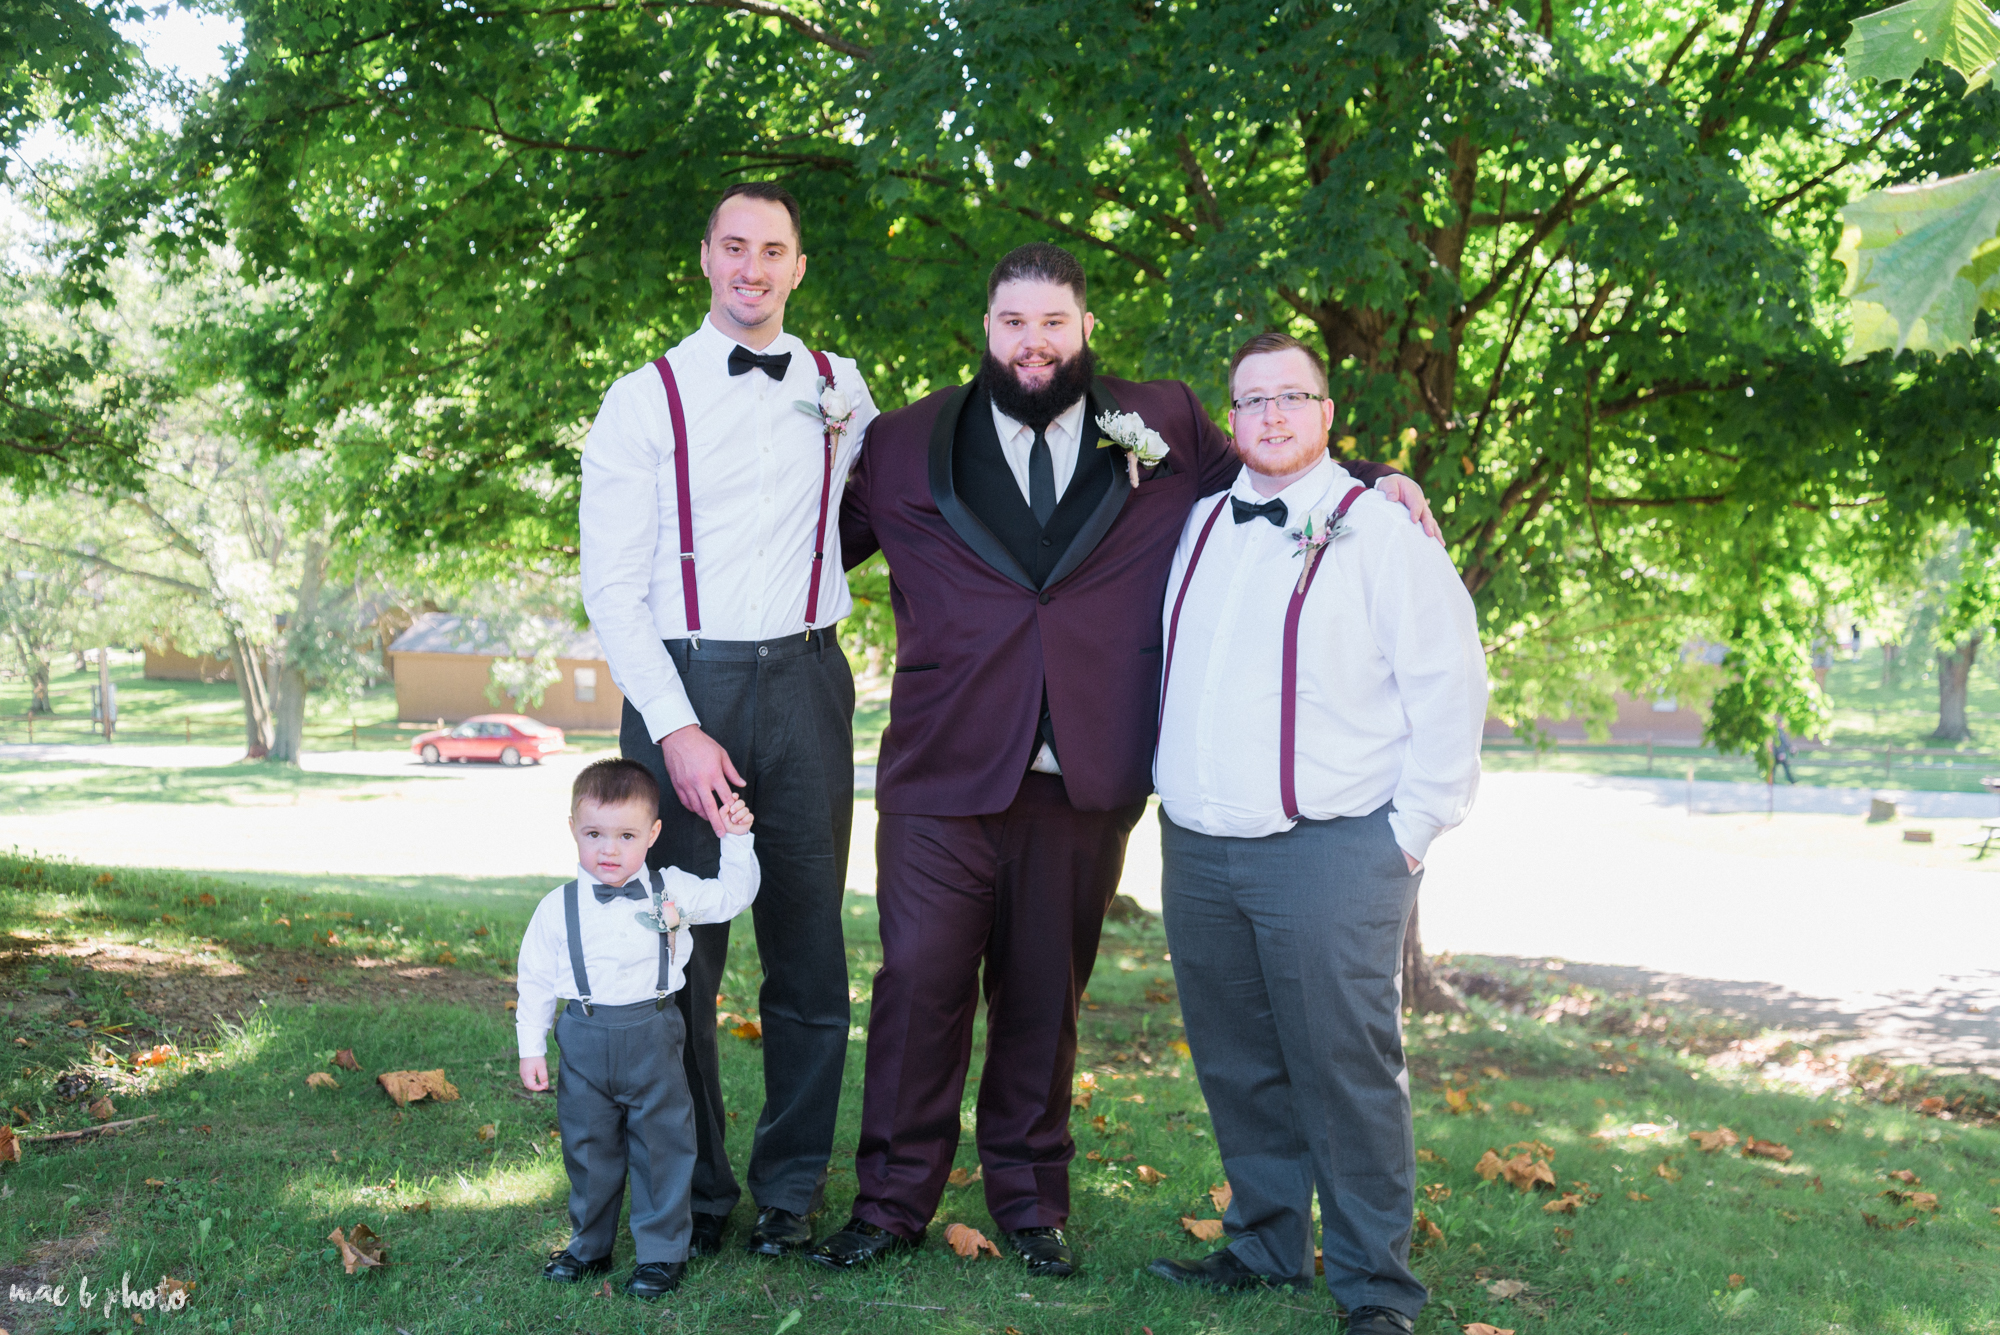 Amber & Kyle's Rustic Barn Wedding at SNPJ in Enon Valley, PA by Mae B Photo-54.jpg